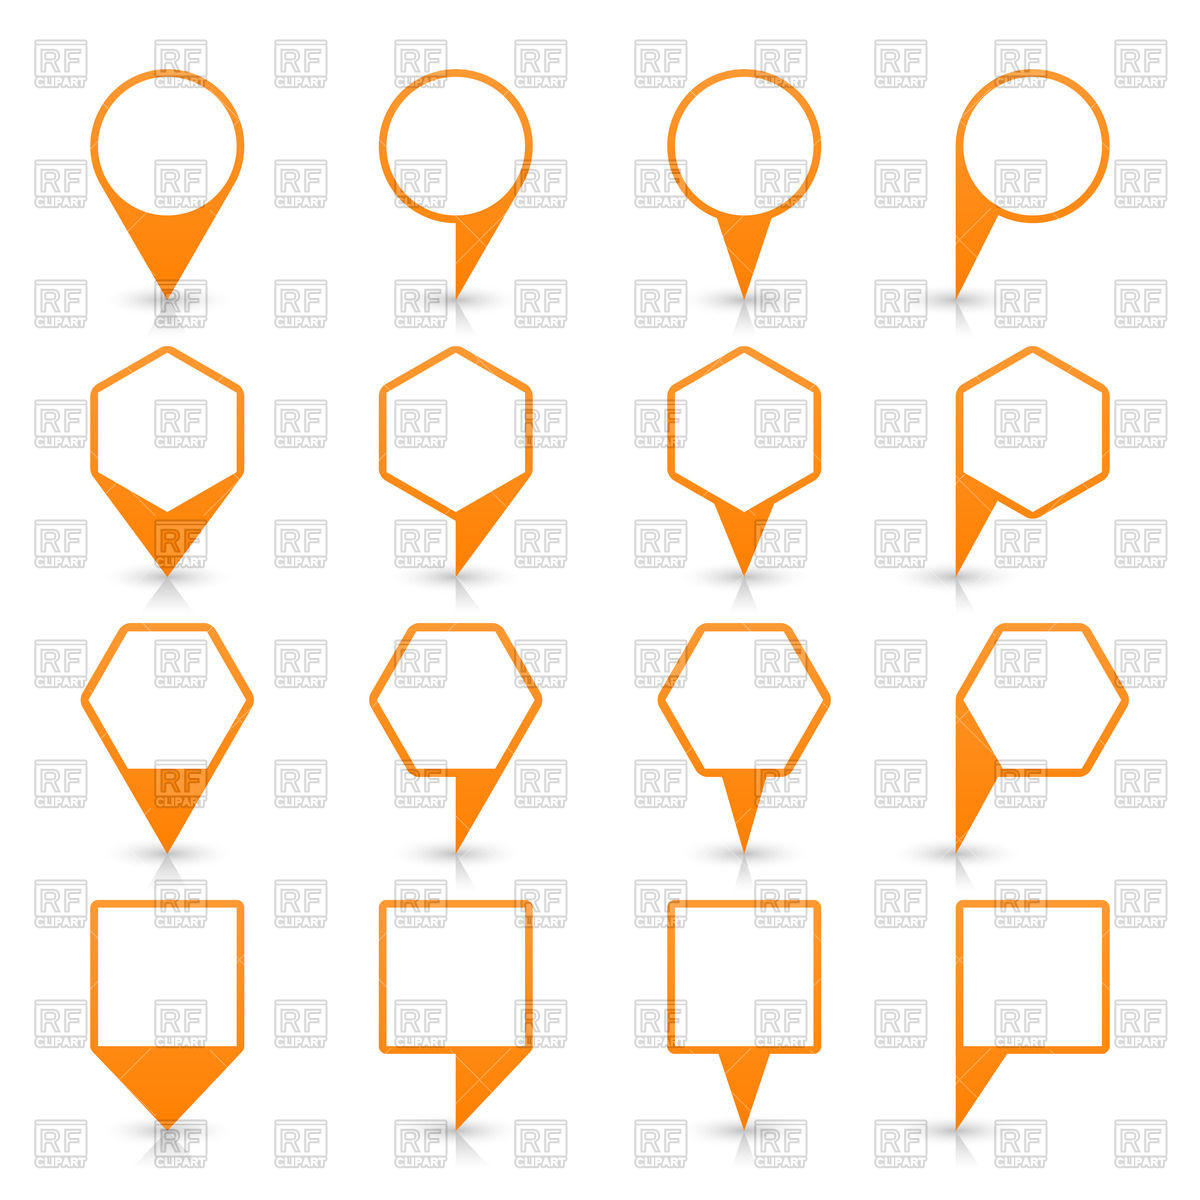 Set of orange map markers with white centres Vector Image #50470.